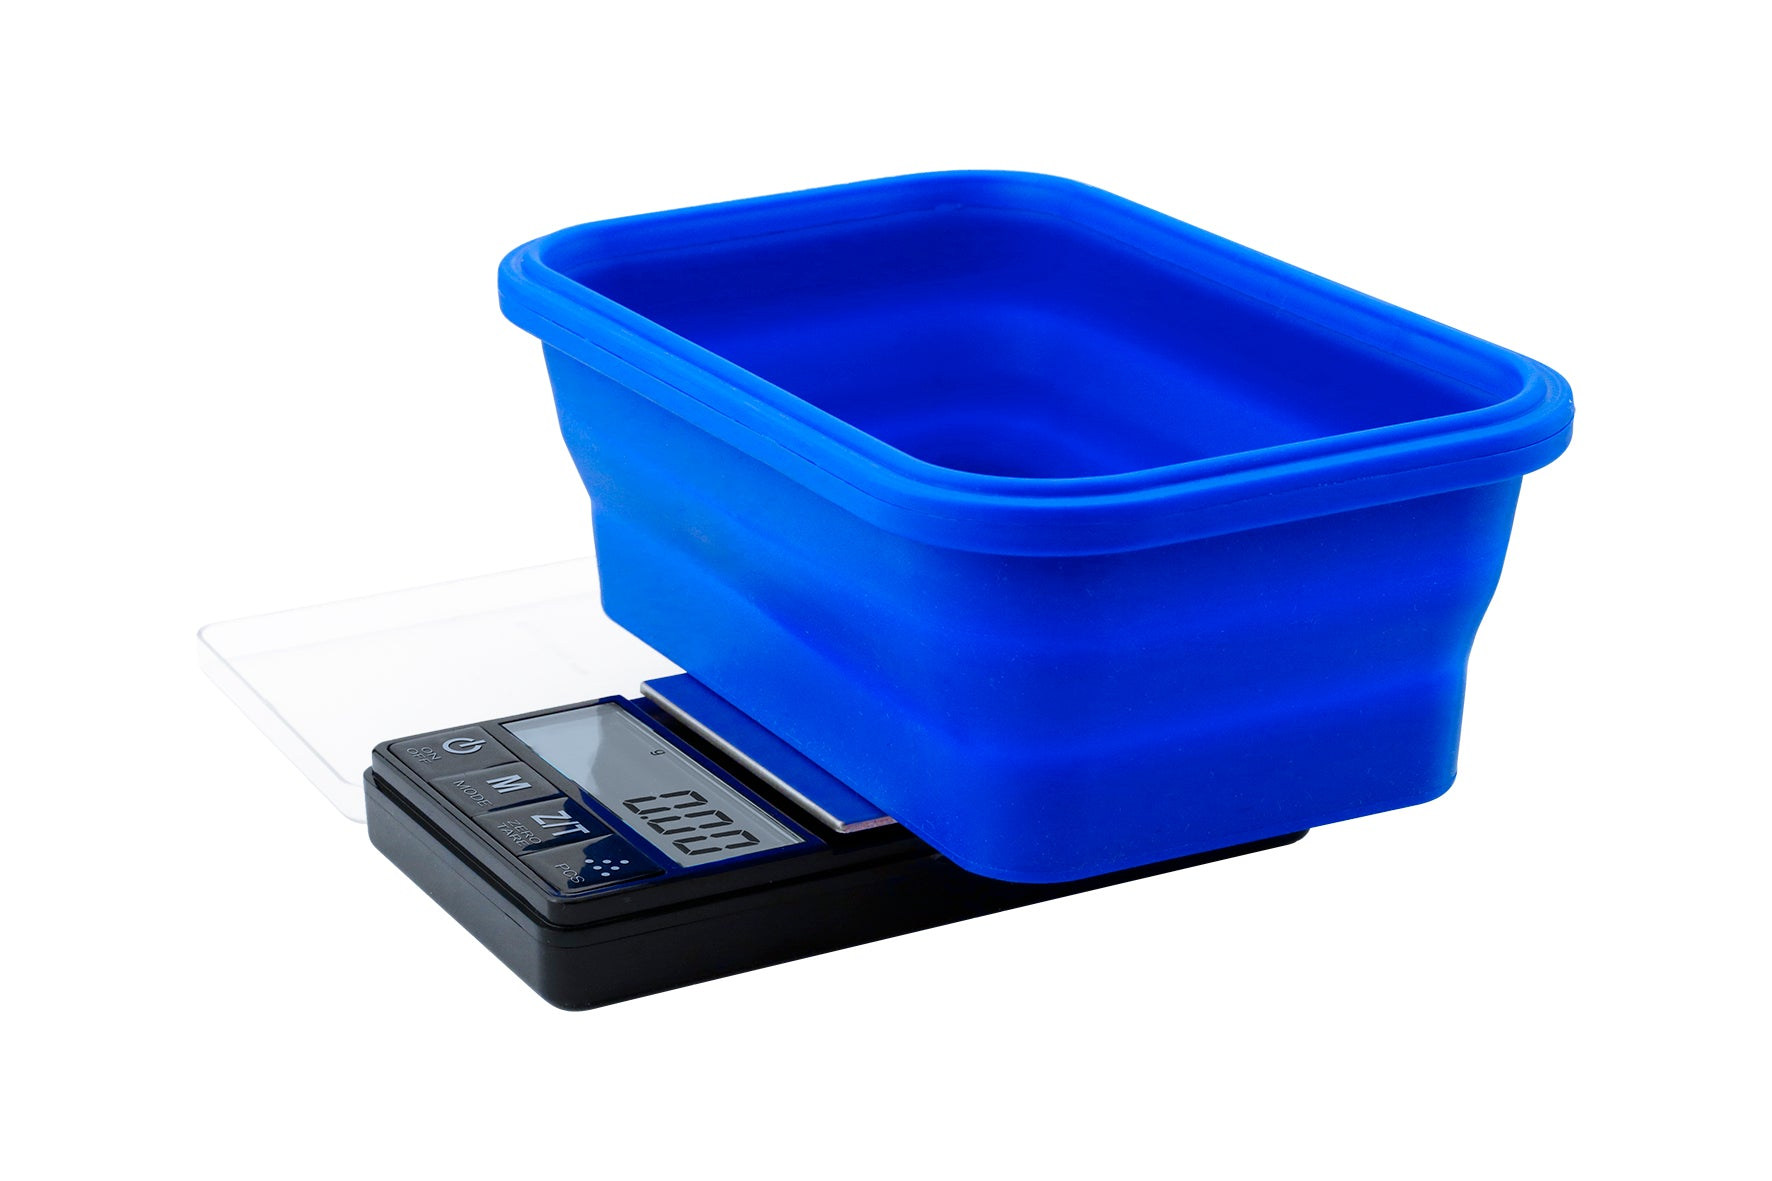 SBS-200 On Balance The ORIGINAL Silicone Bowl Scale - Blue 200g x 0.01g